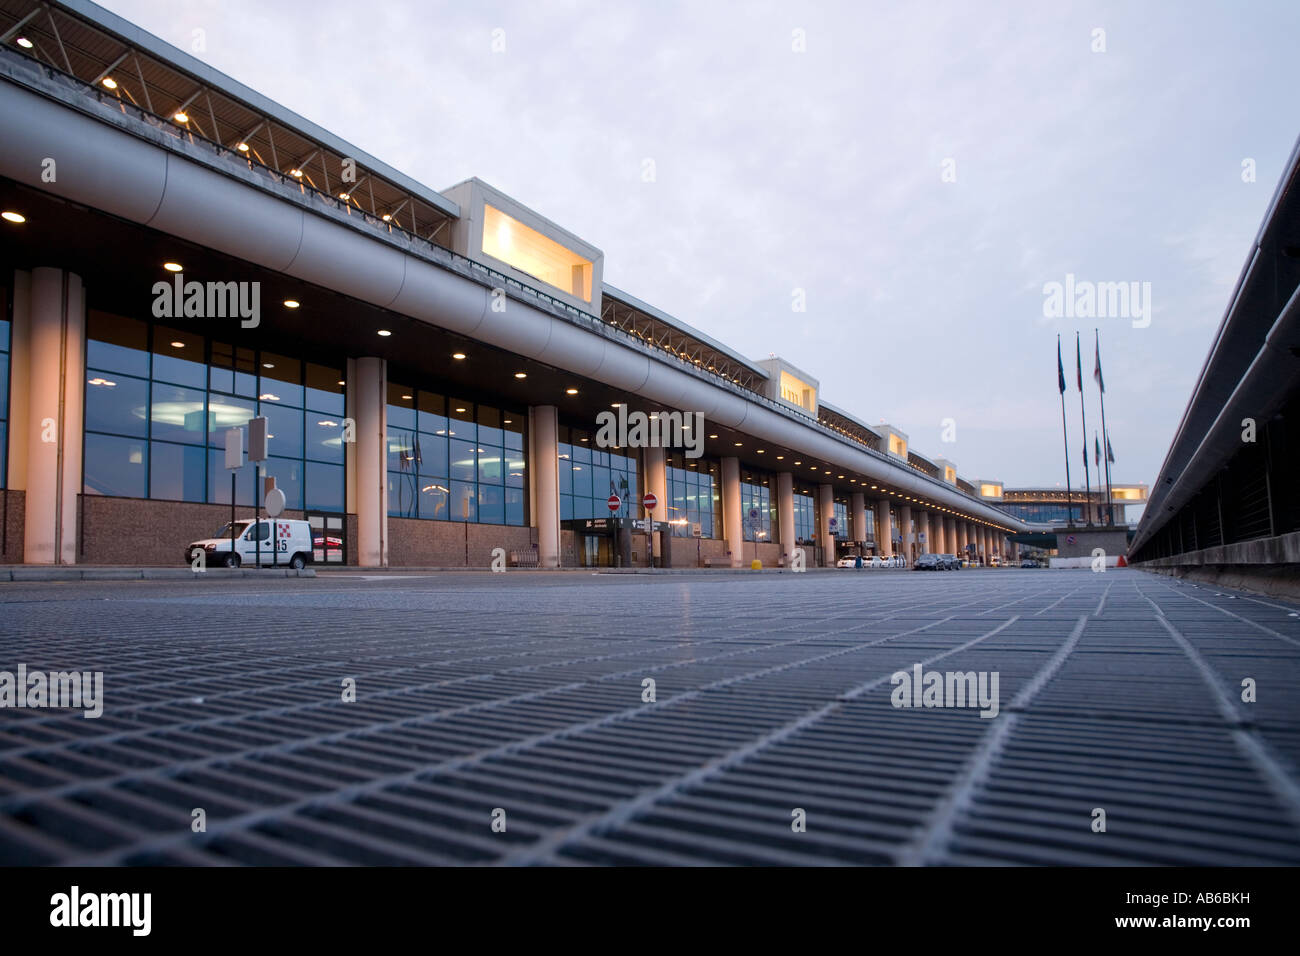 Malpensa international airport arrivals terminal, Milano, Italy - Stock Image